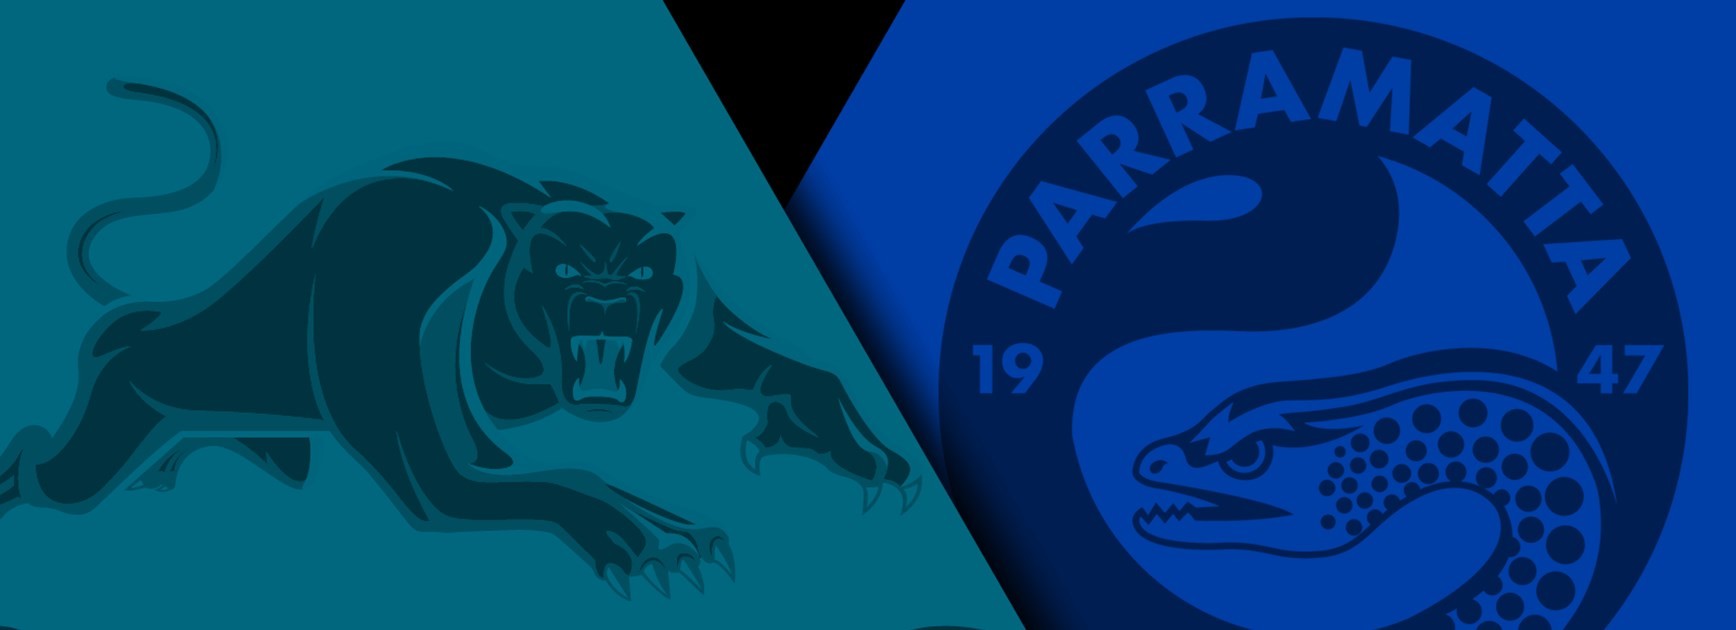 Will the Panthers beat the Eels on Sunday?